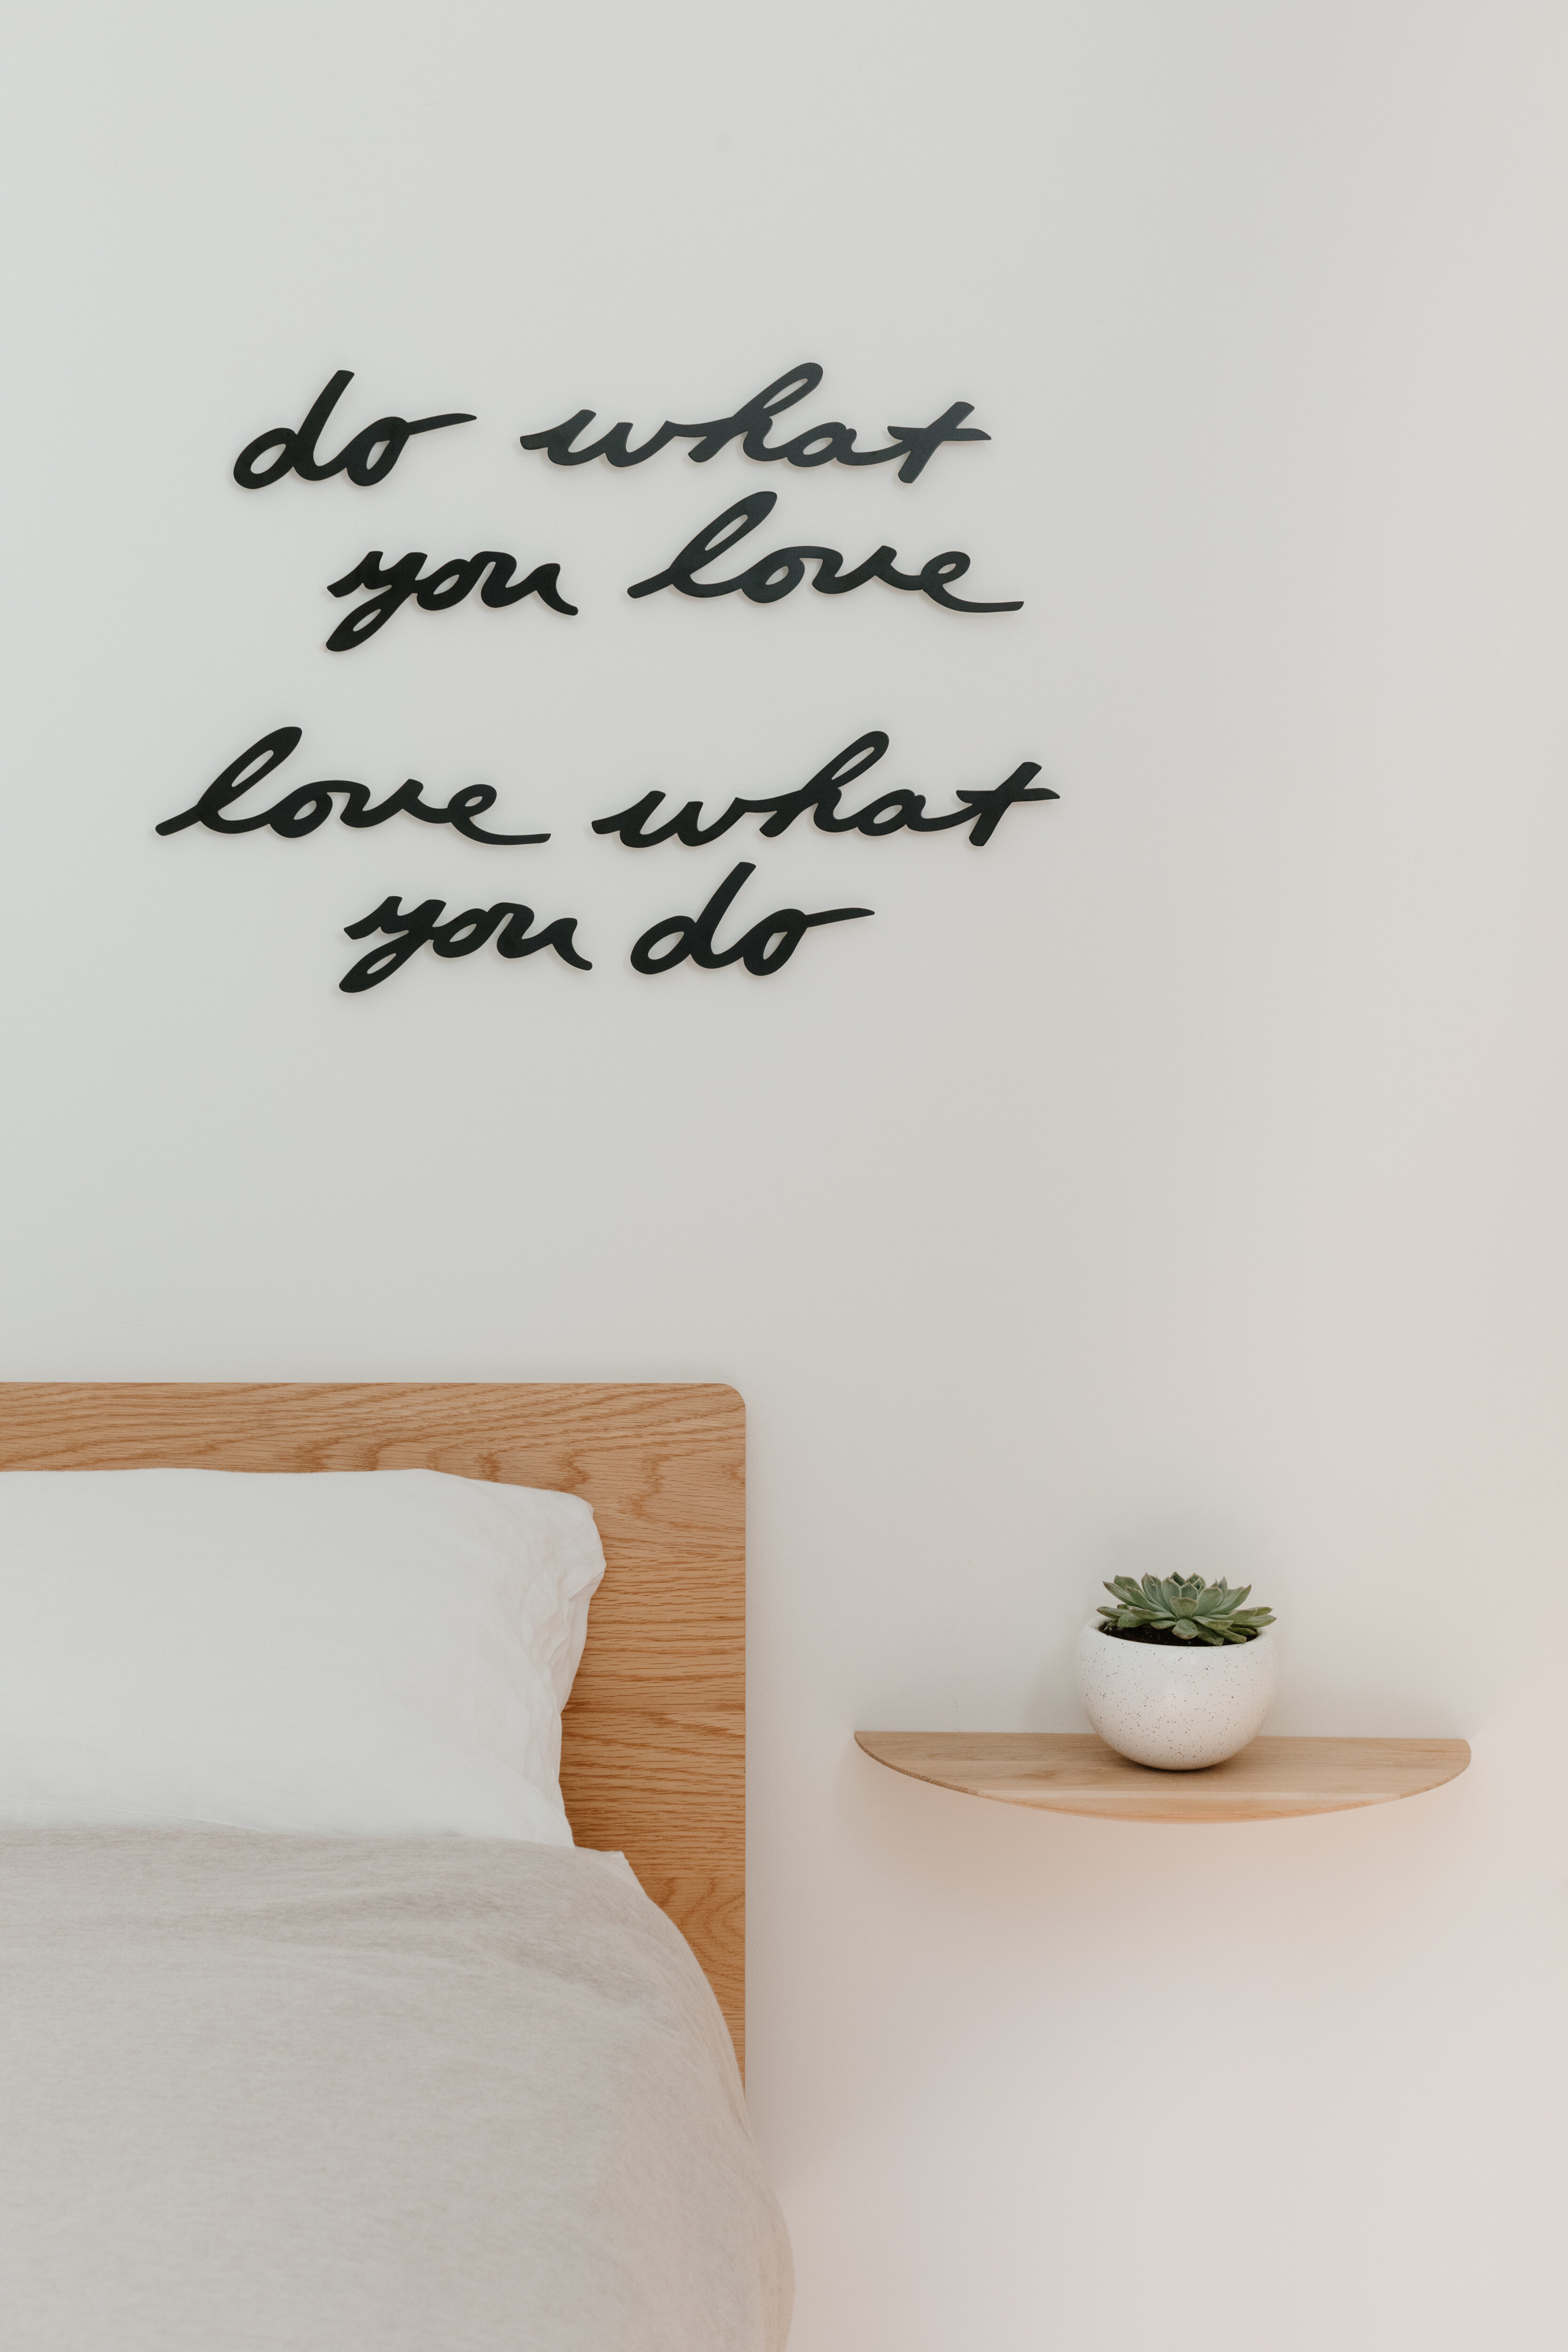 Joss & Main Pertaining To Most Popular Choose Happiness 3d Cursive Metal Wall Decor (View 10 of 20)